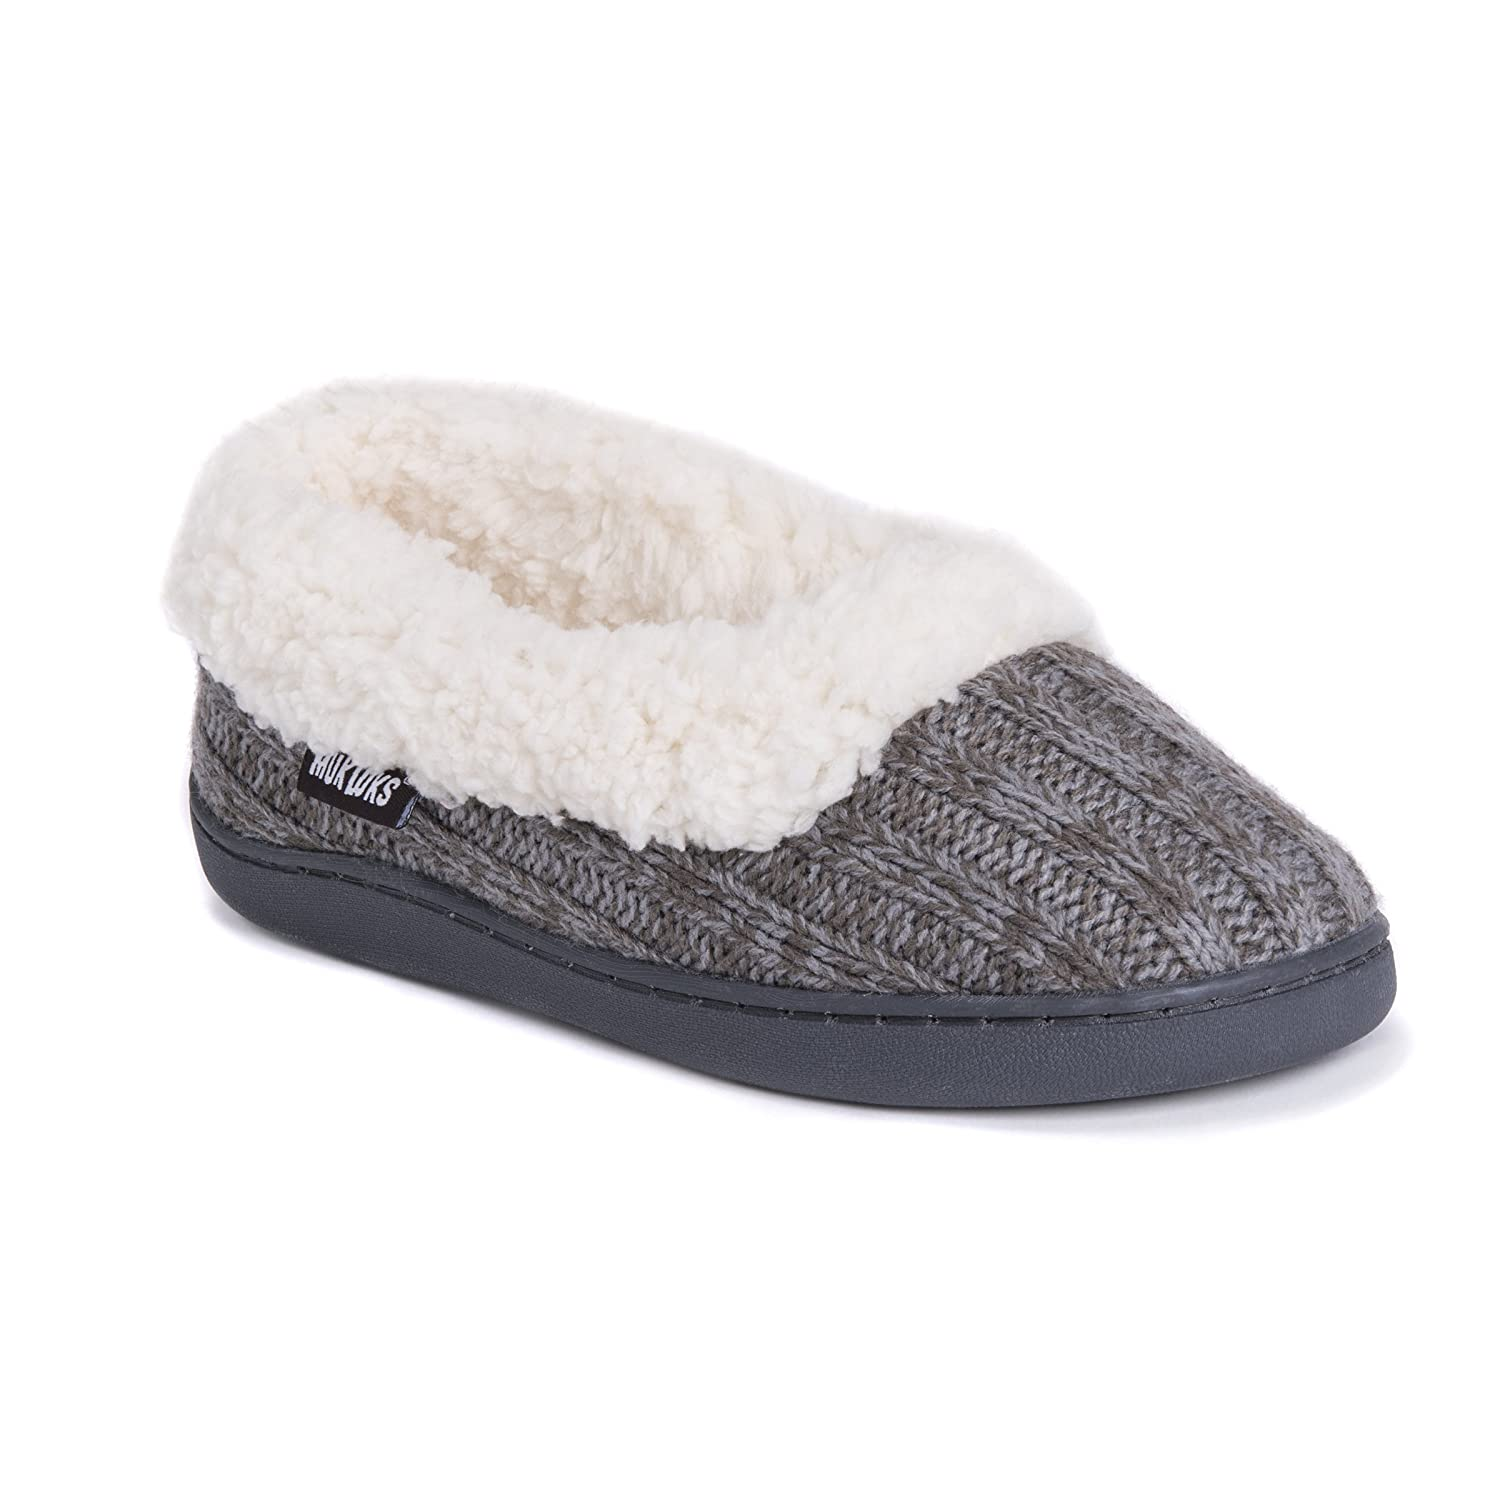 f69a4ae0bbc78 Amazon.com | MUK LUKS Women's Becky Slippers-Grey | Slippers